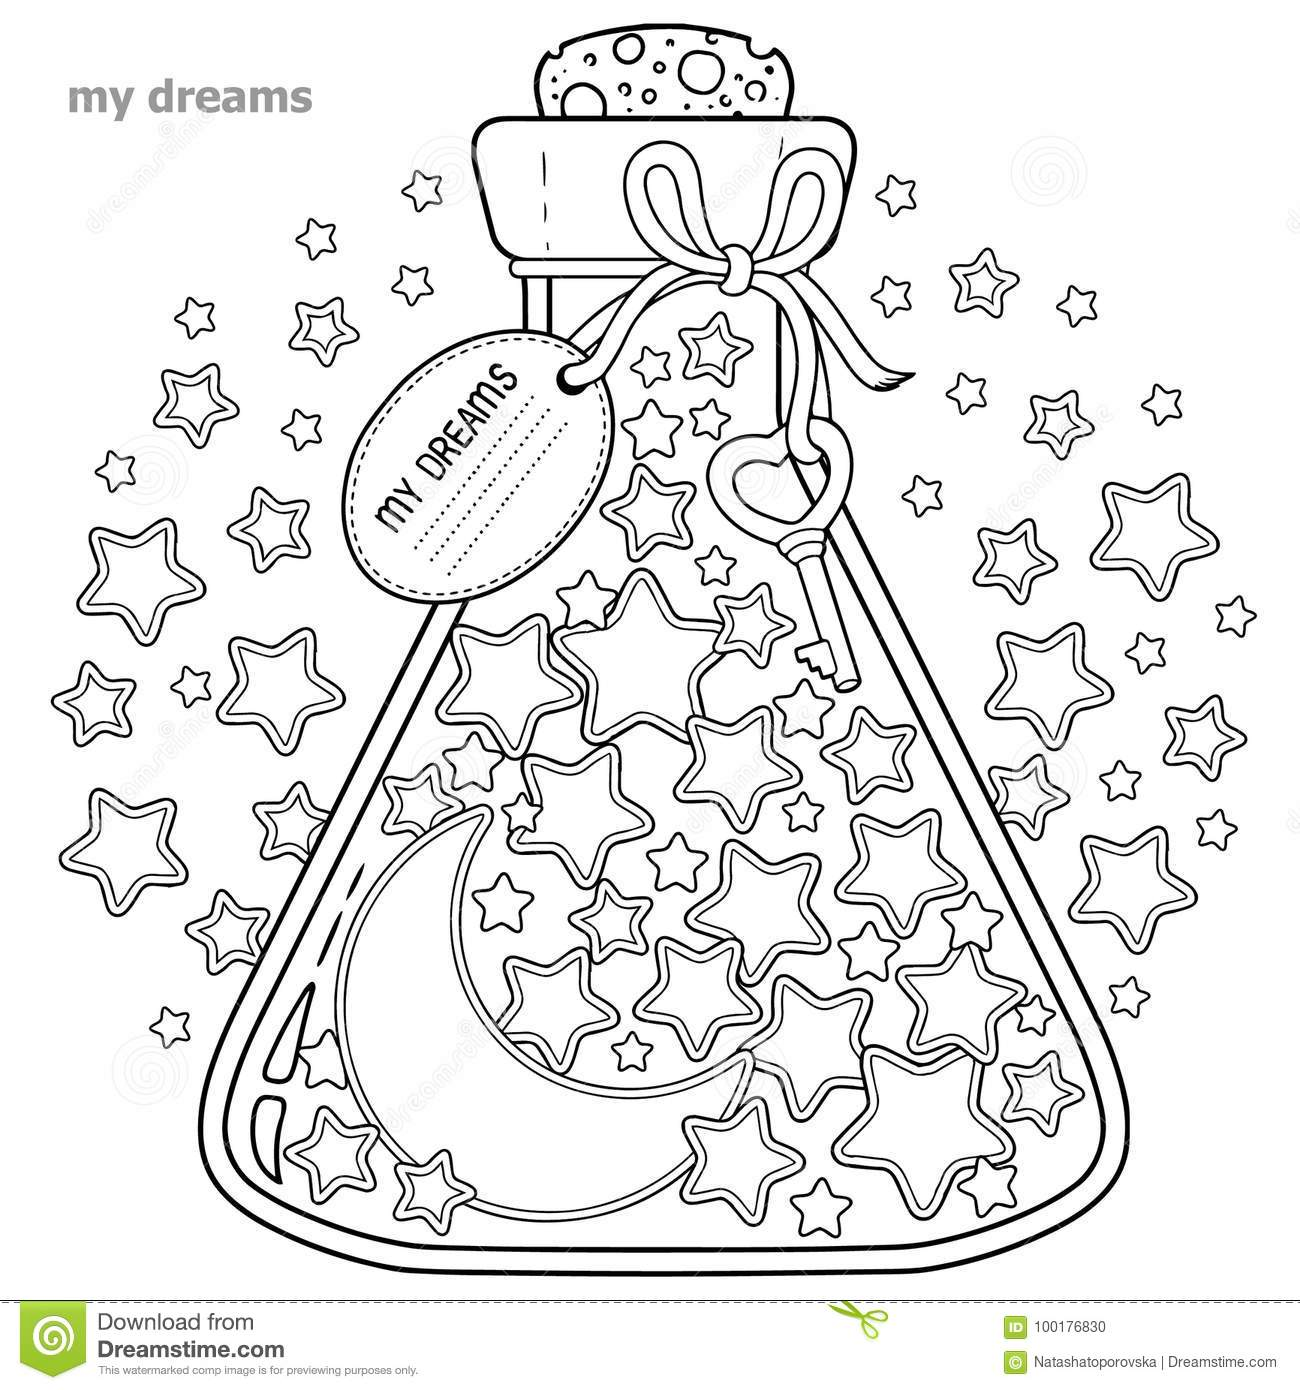 Coloring book for adults. A glass vessel with dreams. A bottle with stars and moon